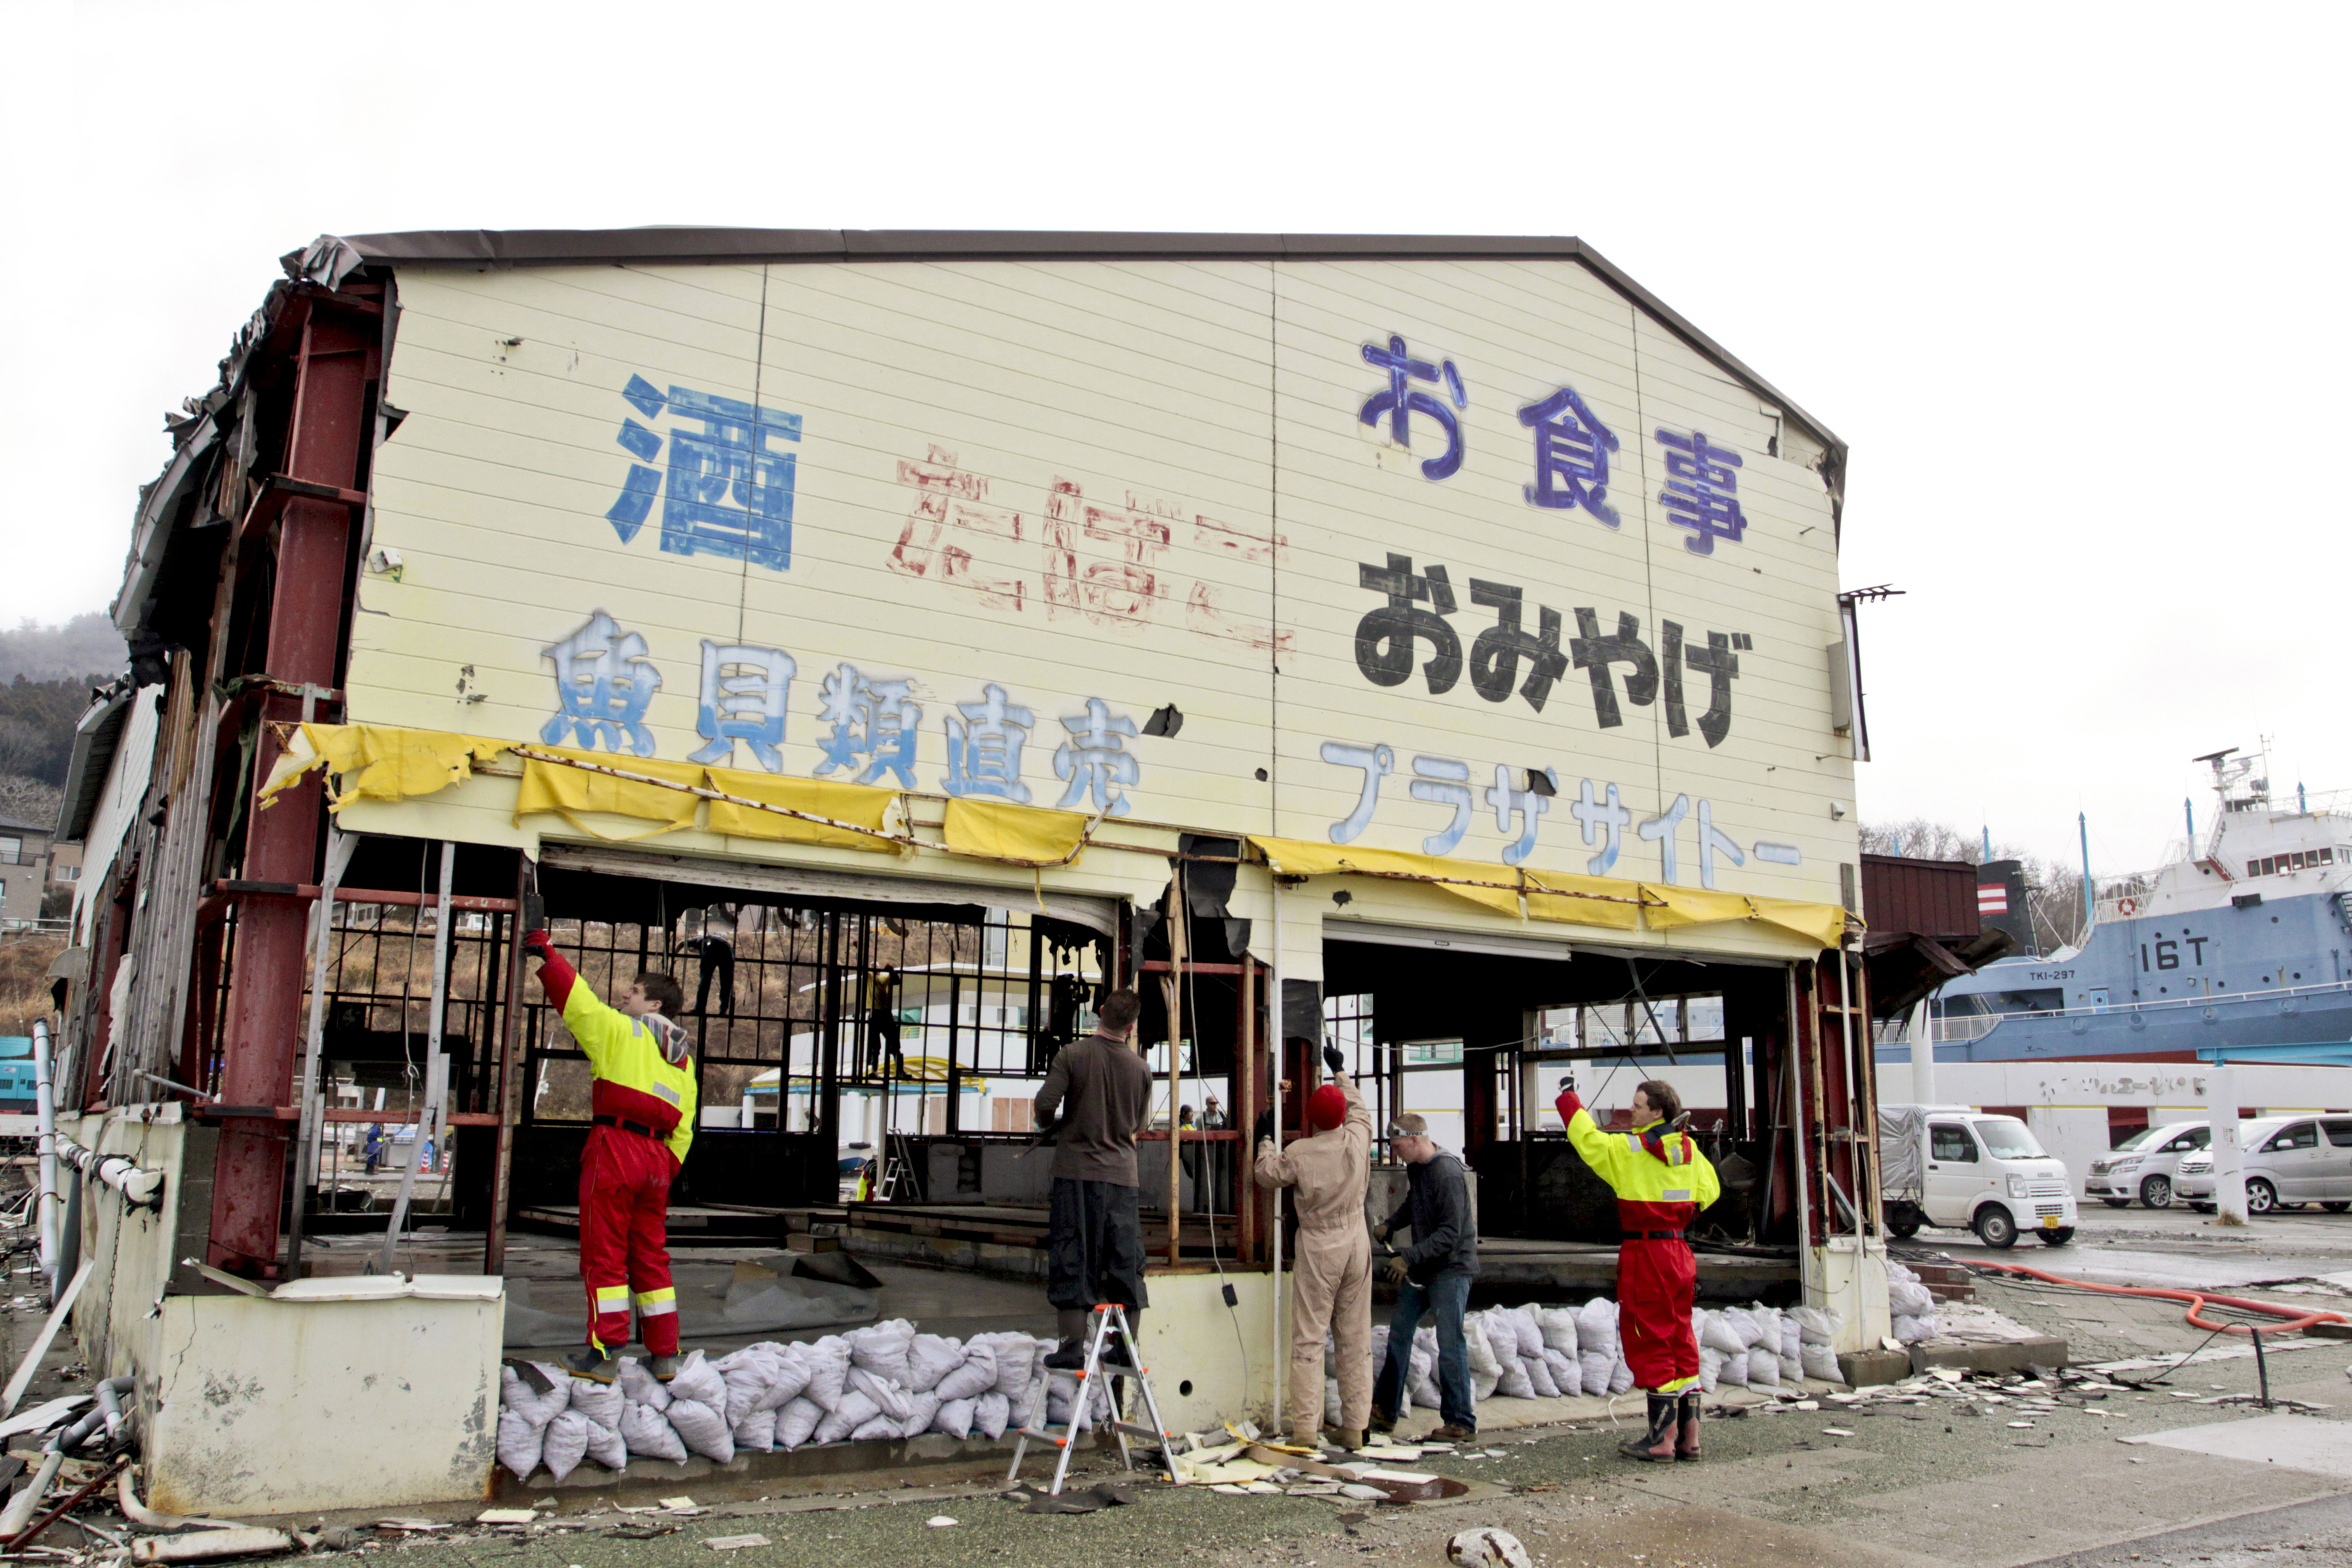 Volunteers remove old walls of what used to be a local souvenir shop and restaurant at a dock in Ishinomaki, Japan (U.S. Marine Corps photo by Lance Cpl. Benjamin Pryer)